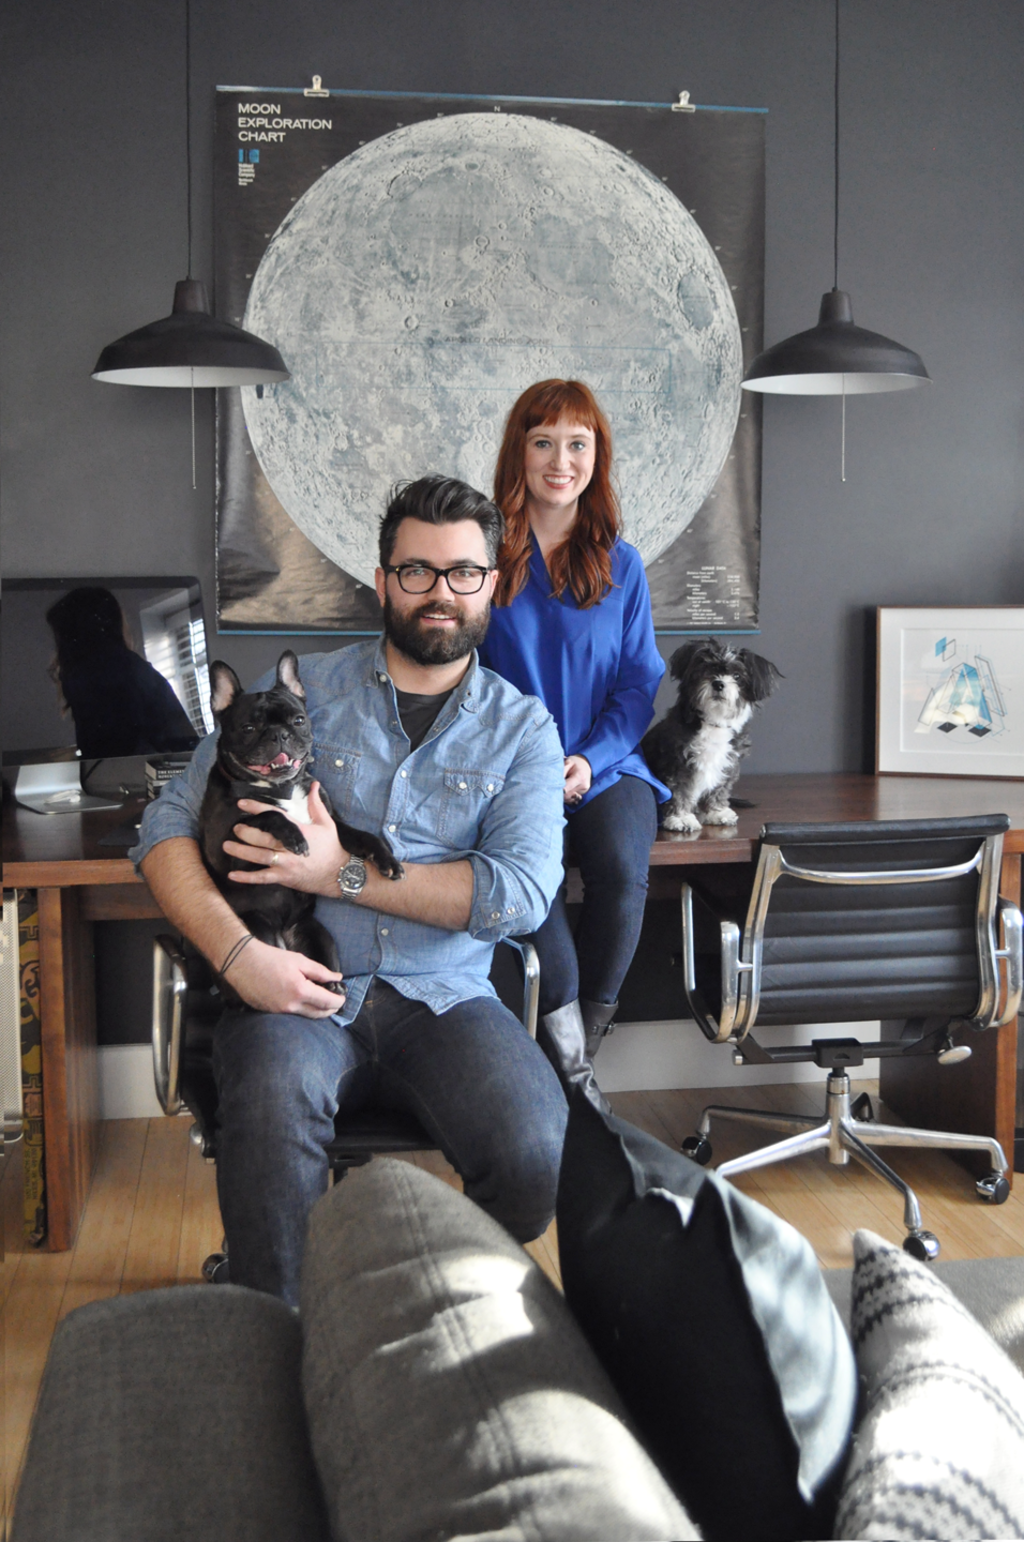 House Tour: A Compact Brooklyn Apartment and Studio